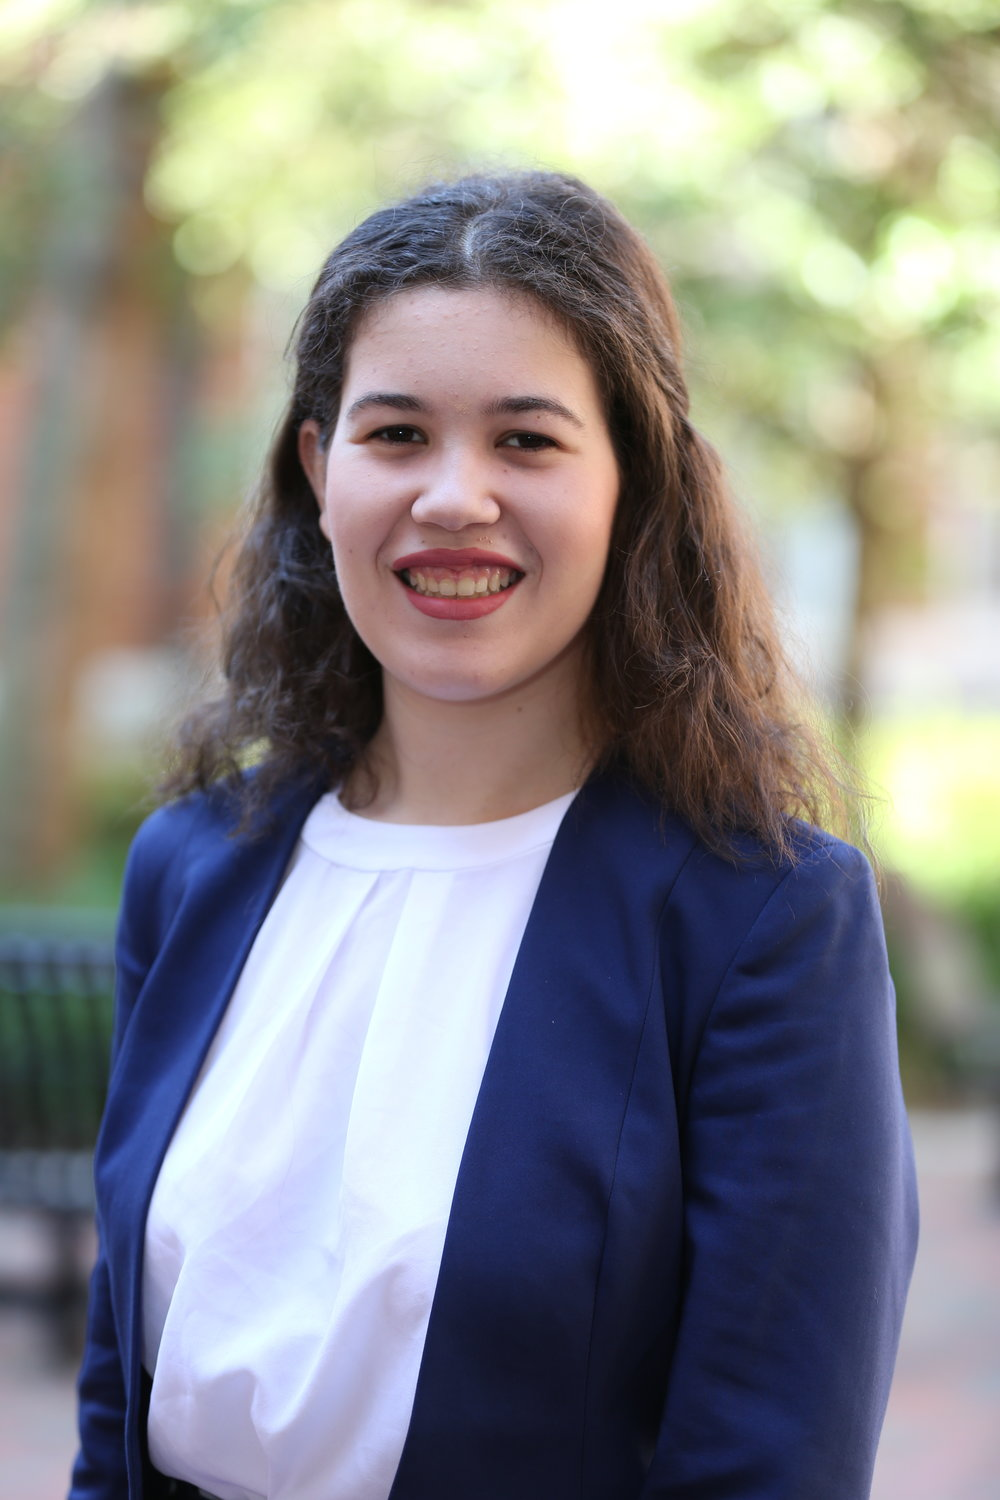 Major(s) : General Business, MIB   Minor(s) : N/A   Involvement : Civic engagement director, WW Peer Leader, Business Ethics Case Team, CAP Mentor   Interests/ Hobbies : Running, biking, cooking, baking, writing   Fun Fact : I danced flamenco for 7 years.